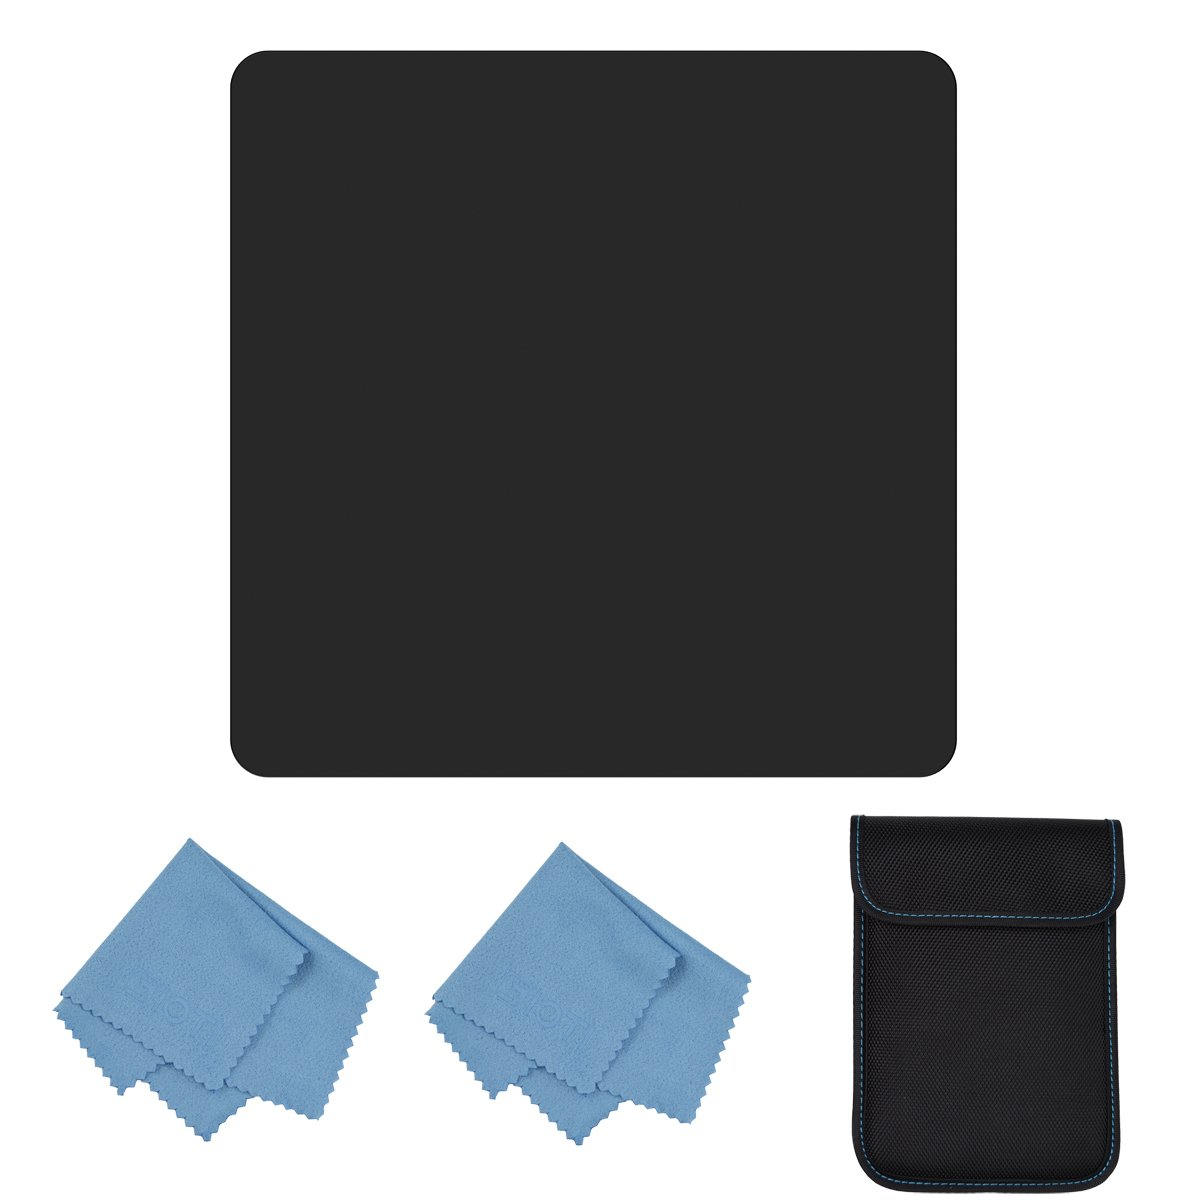 SIOTI Glass Square Filter for Cokin Z Lee Hitech Sioti Holder (100mm100mm, ND64) by SIOTI